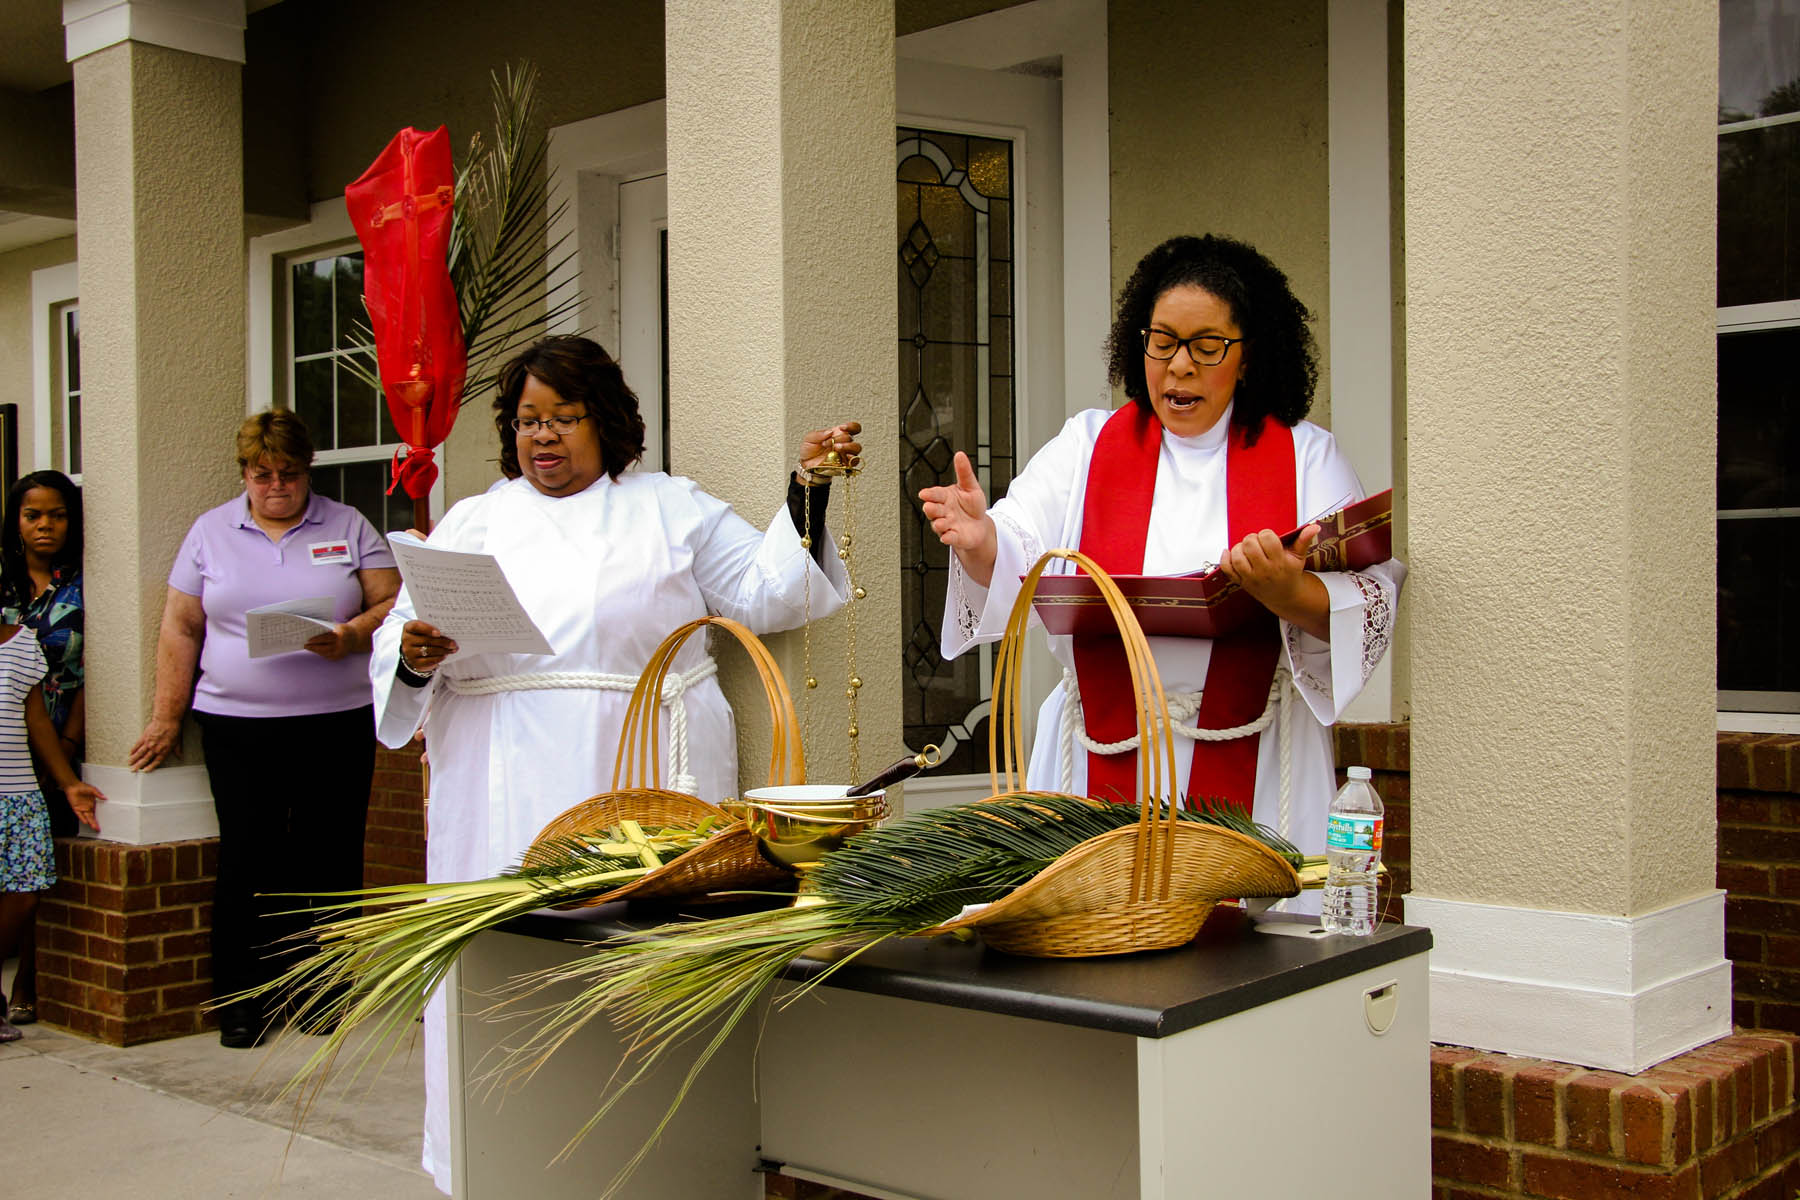 2019-04-14-WCEC-Palm-Sunday-025